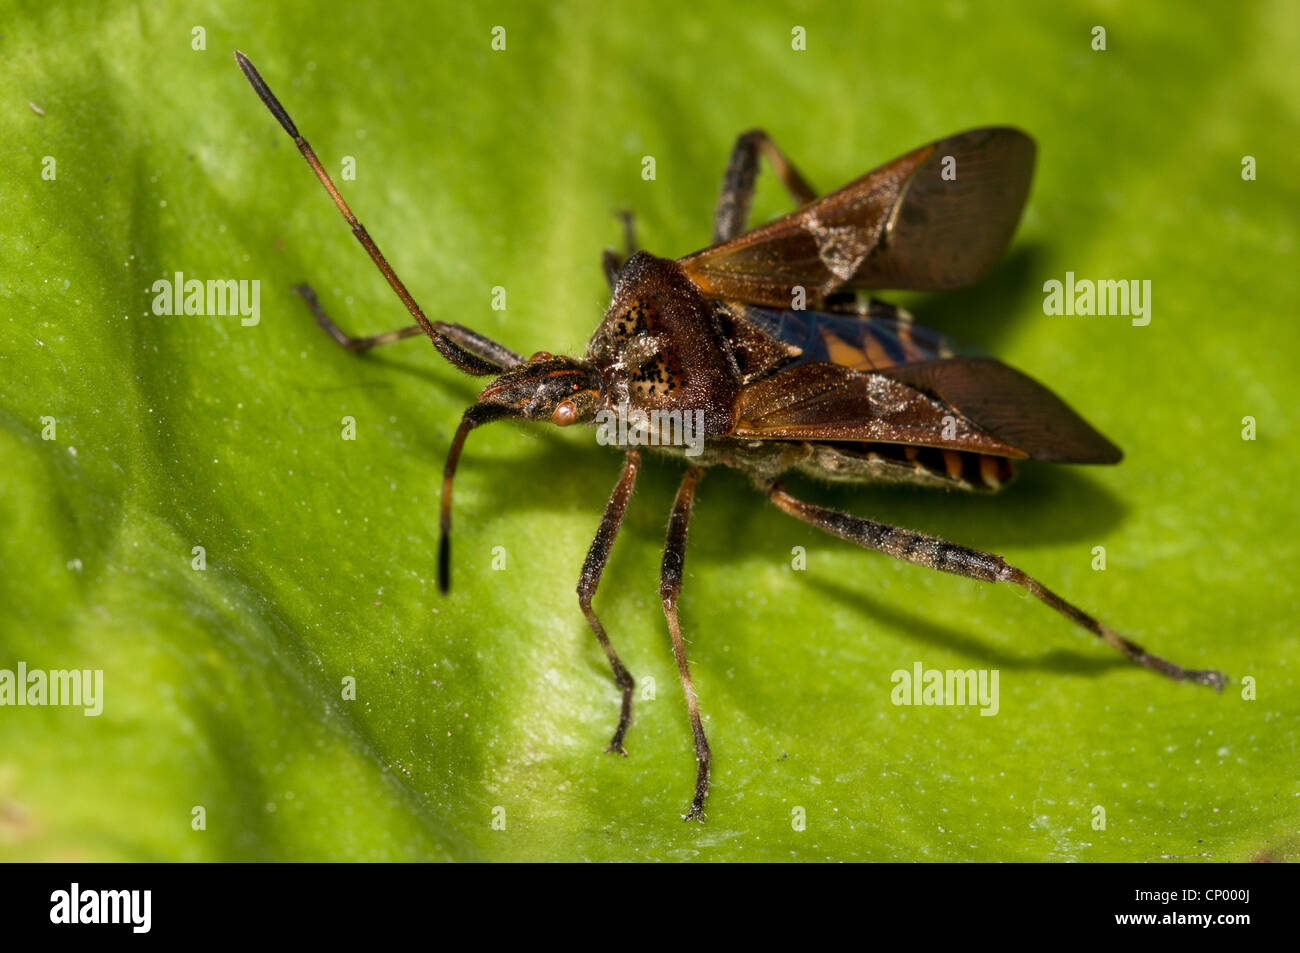 A western conifer seedbug (Leptoglossus occidentalis) resting on a leaf with its wing cases opening, preparatory - Stock Image